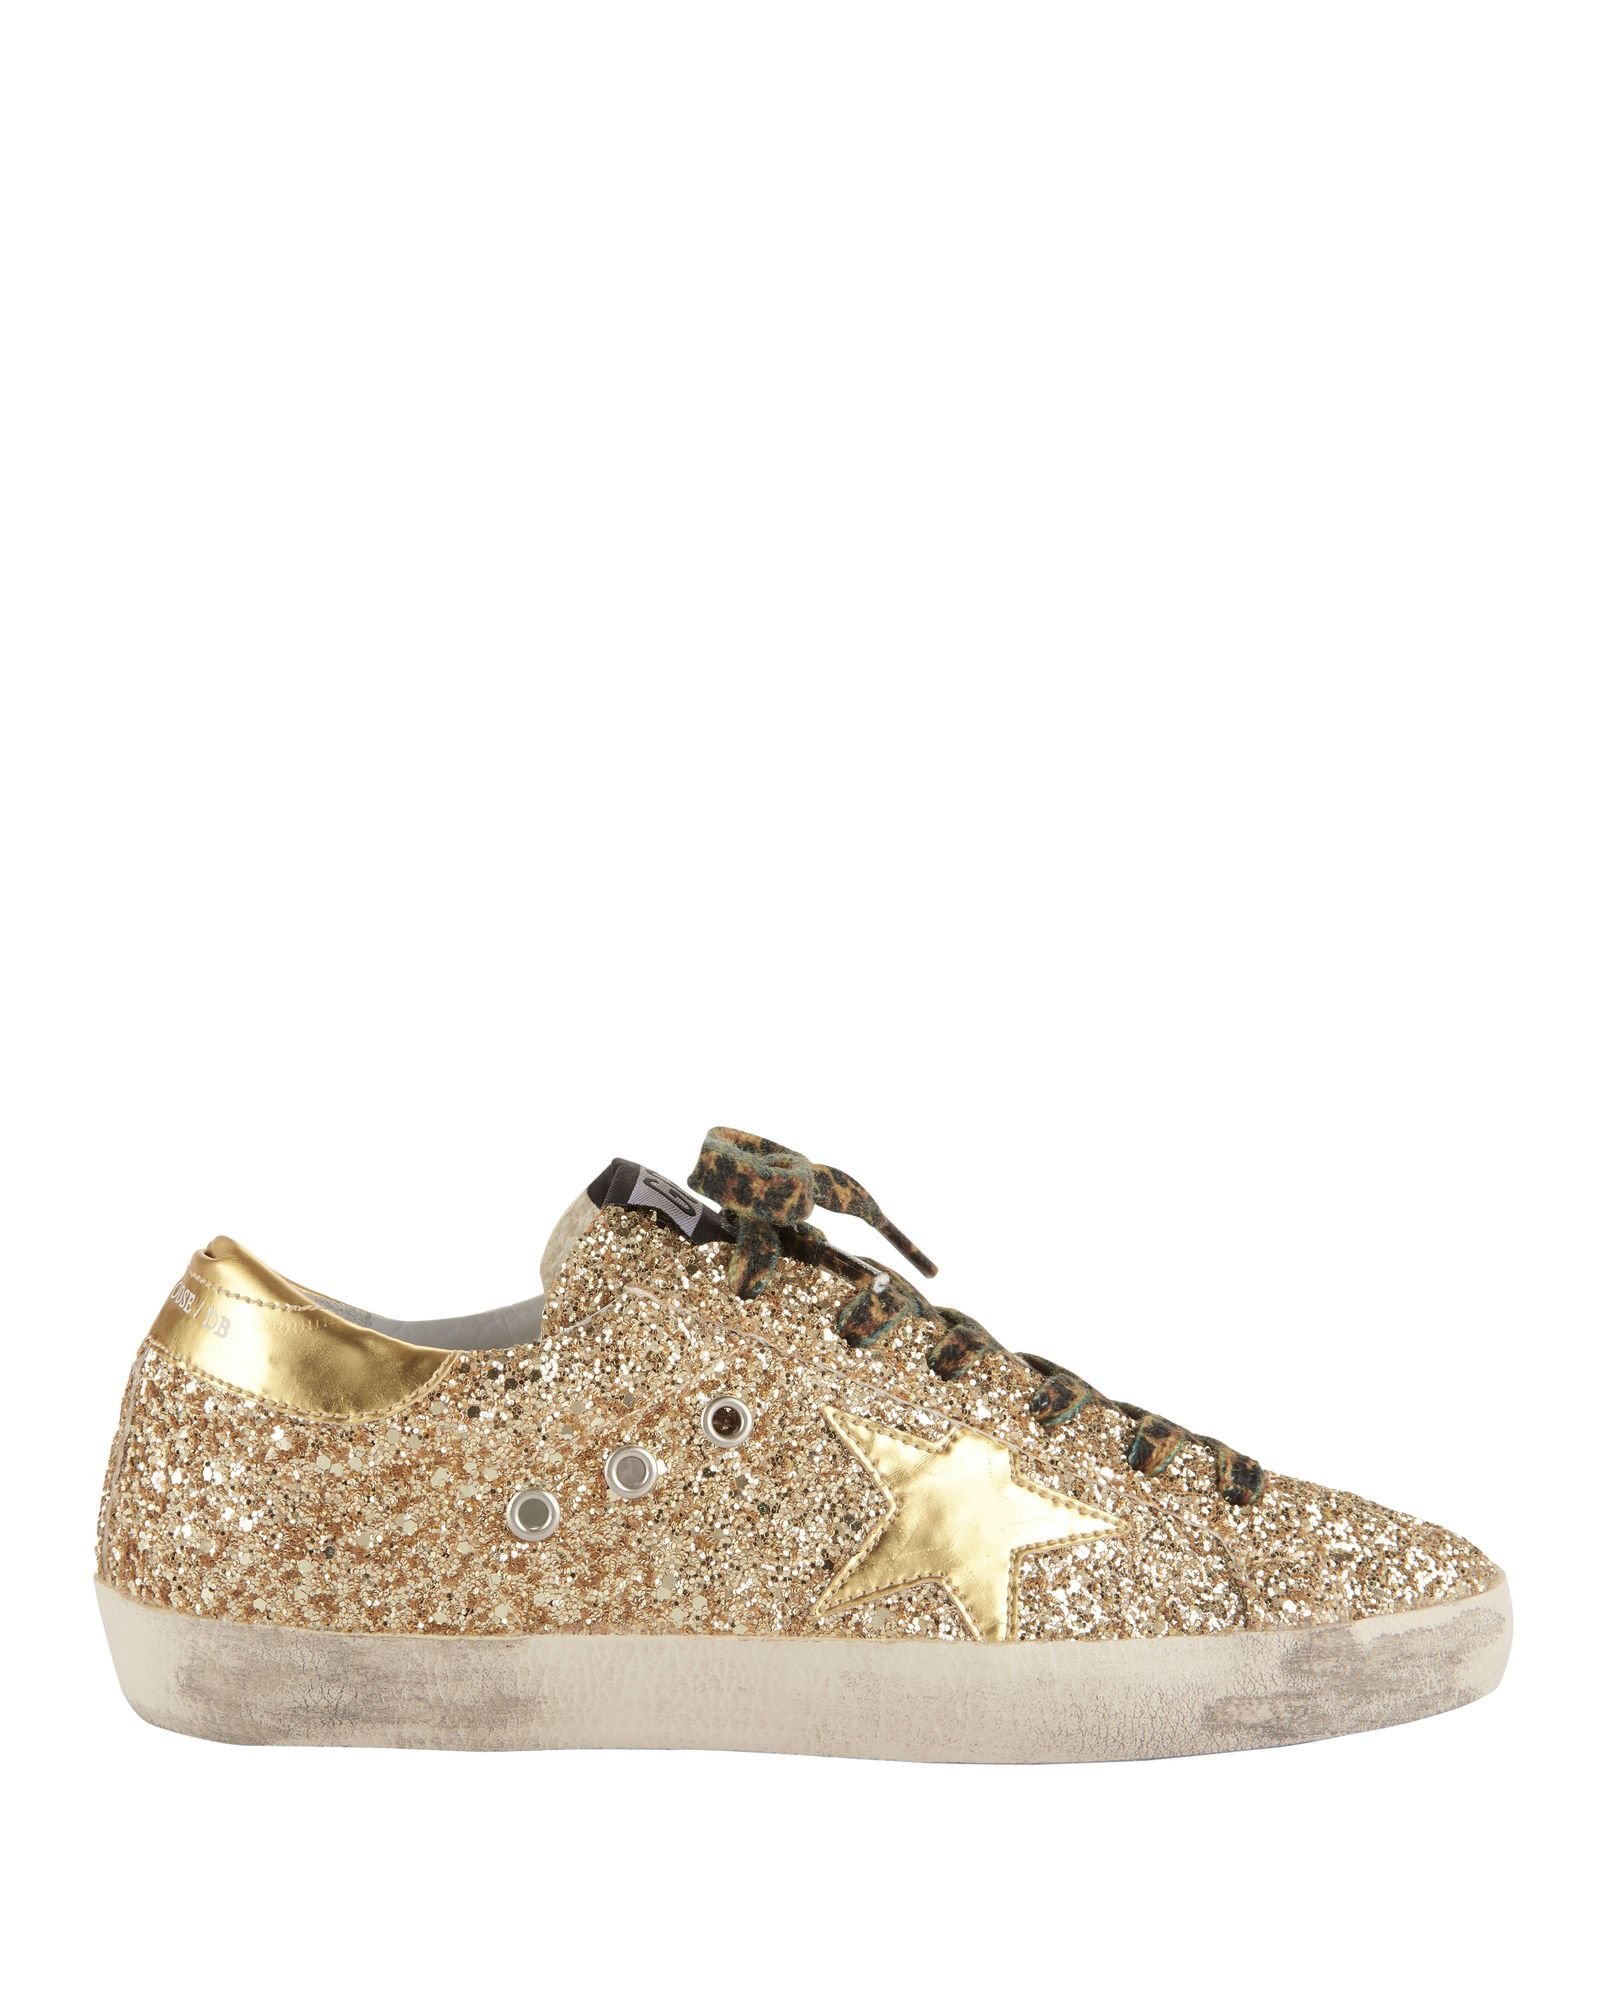 bdd486e95fc2f GOLDEN GOOSE Exclusive Superstar Leopard Lace Gold Glitter Sneakers.   goldengoose  shoes